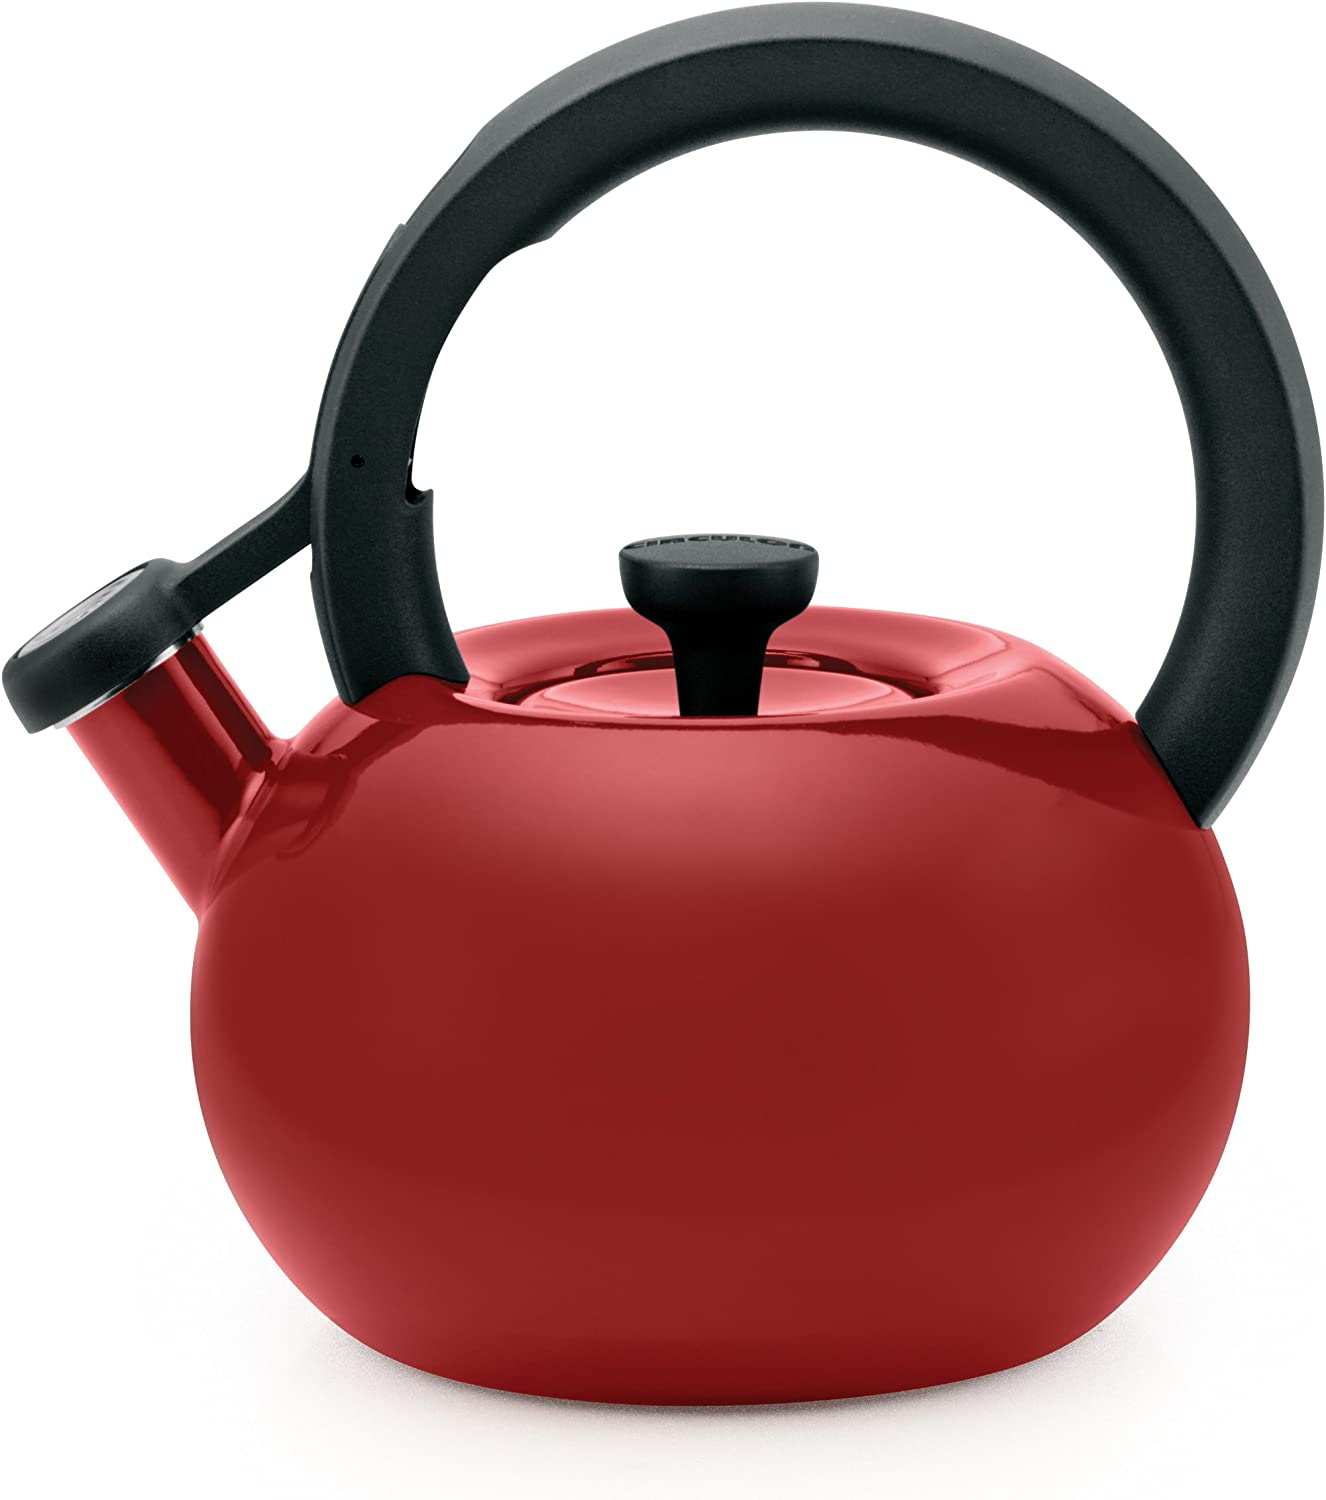 Circulon 1.5-Quart Circles Teakettle